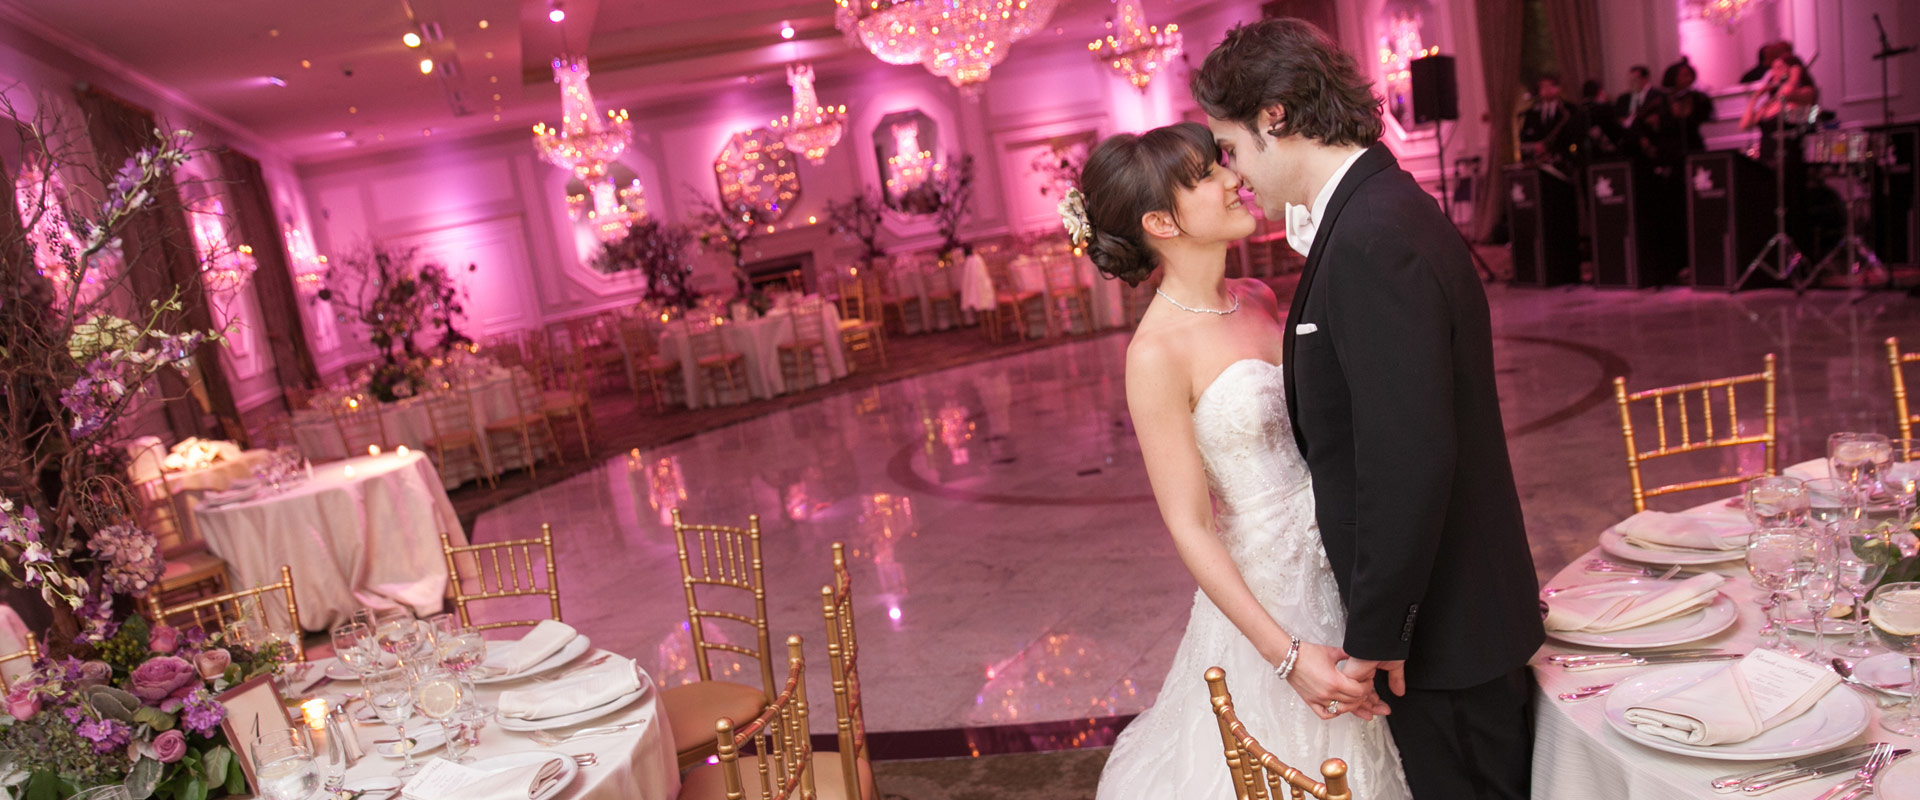 Steal a kiss at your Rockleigh, NJ wedding celebration